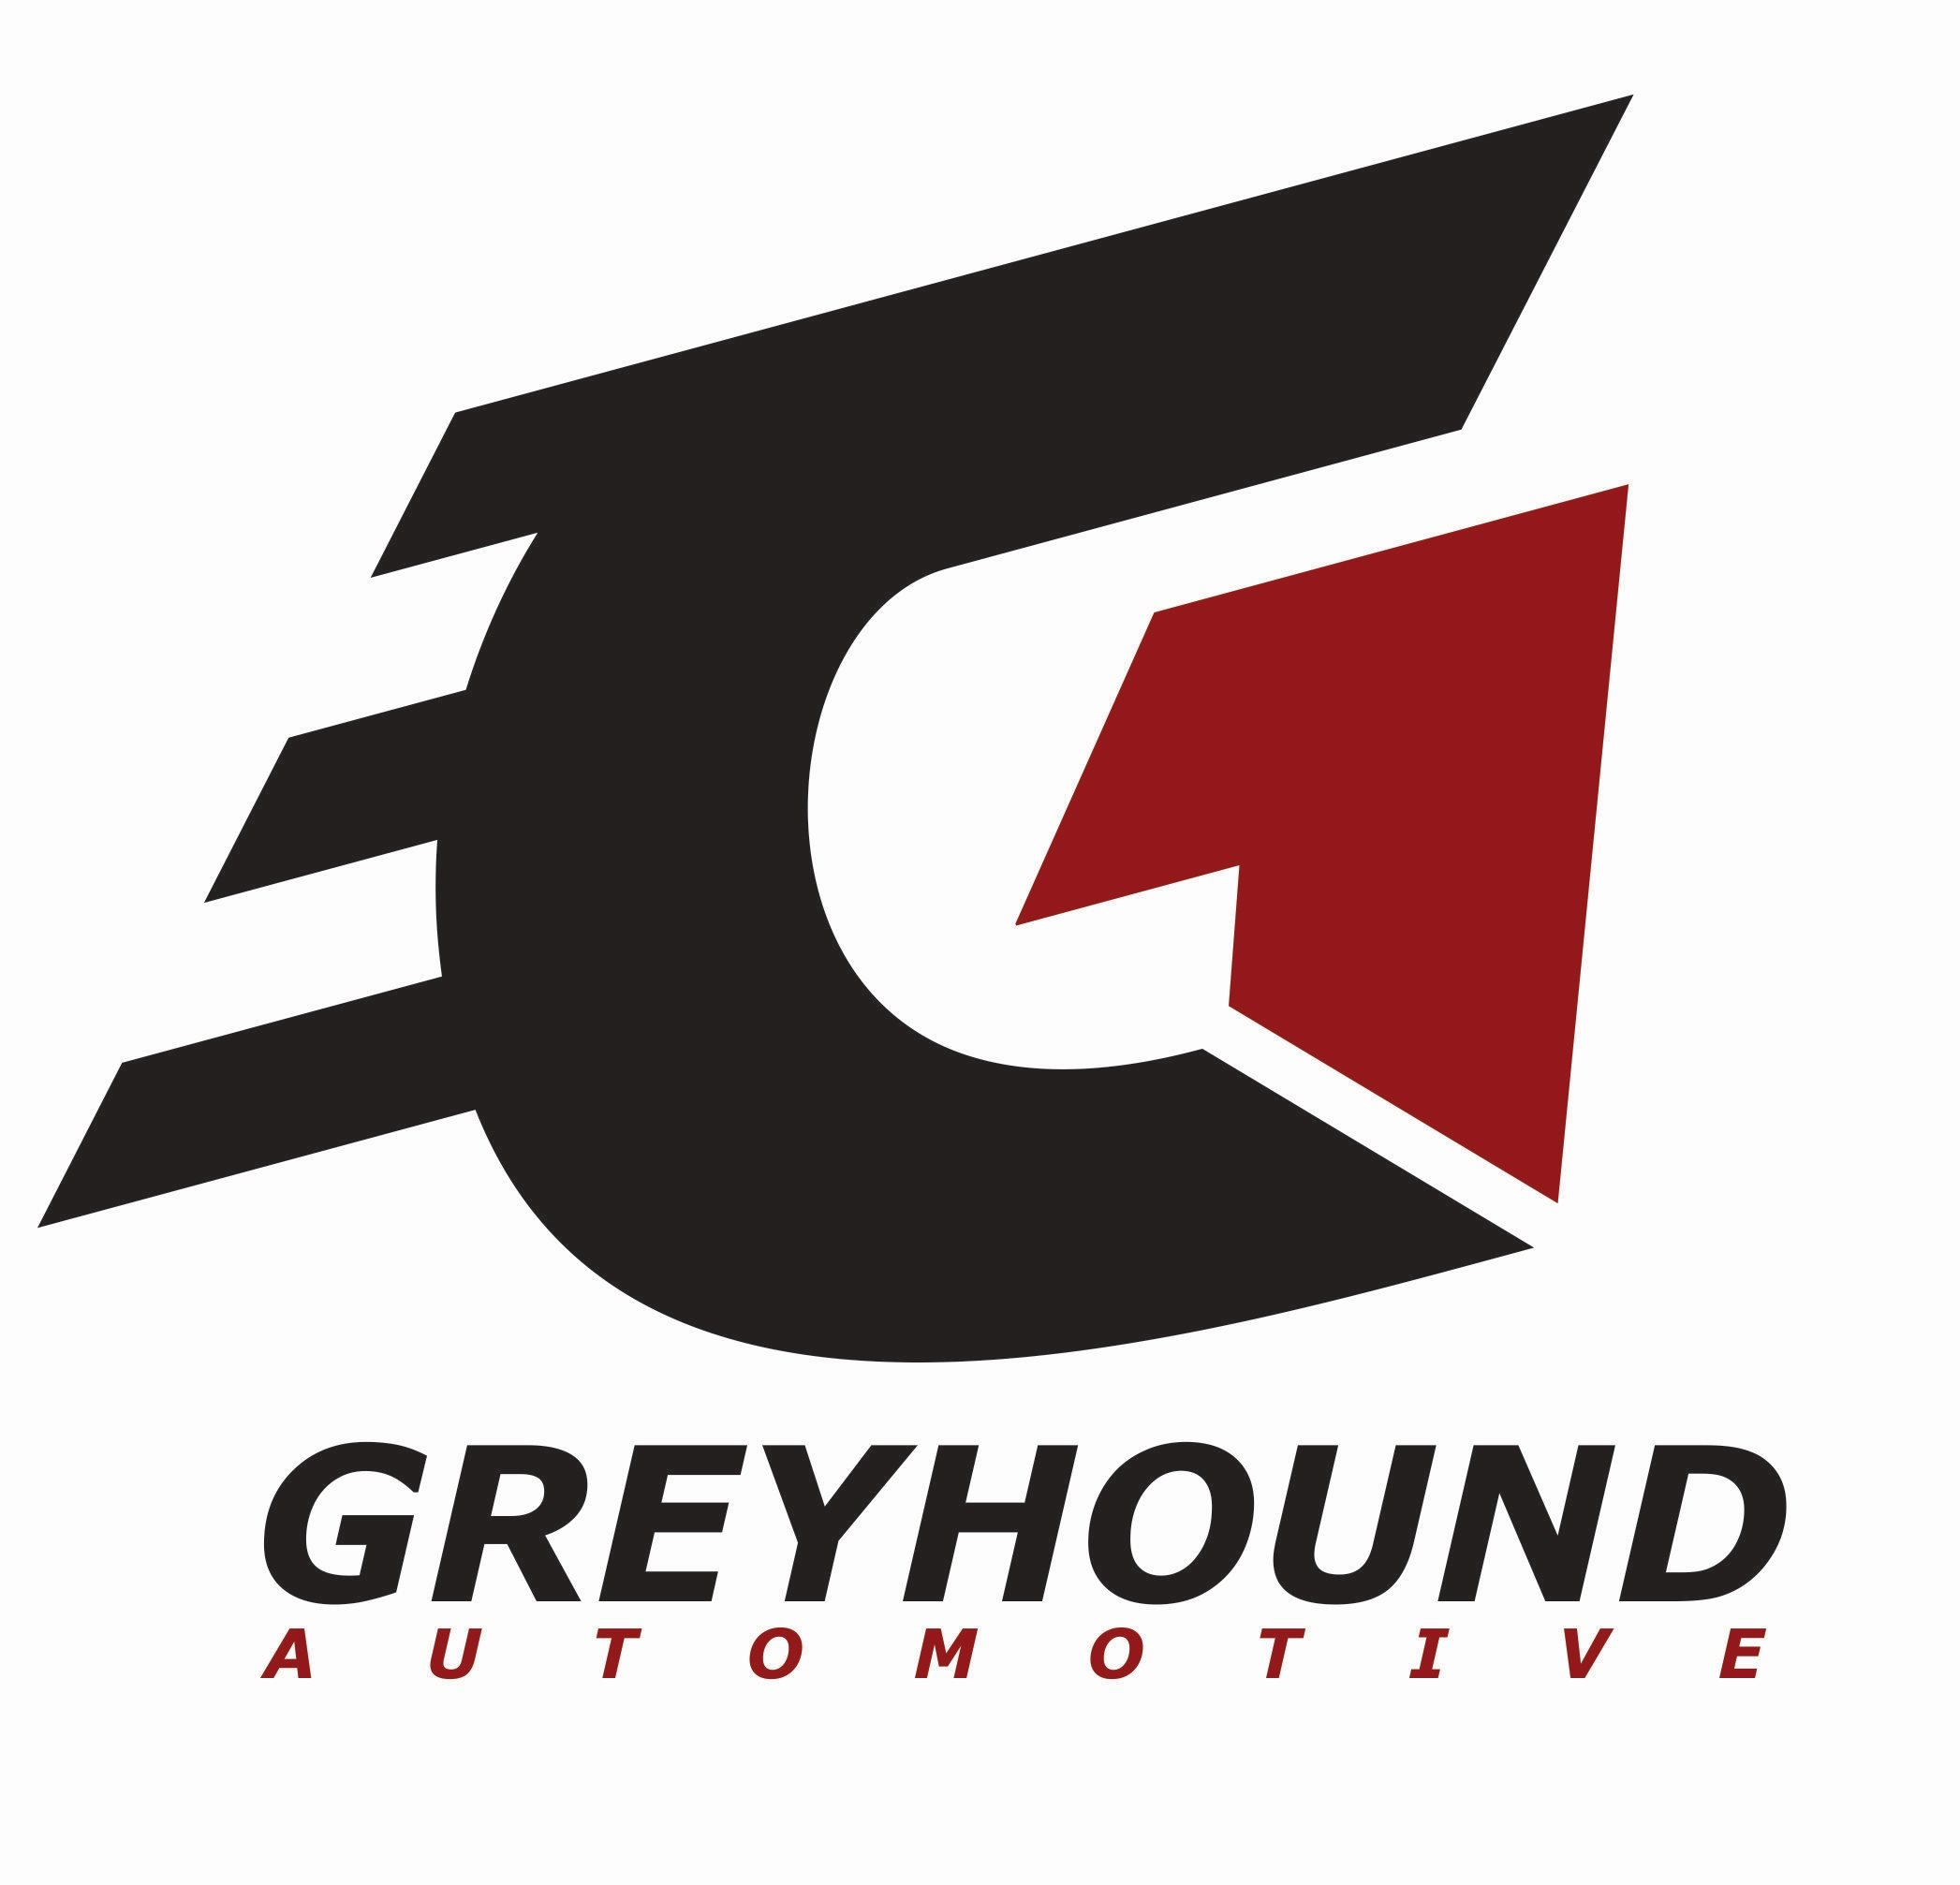 Greyhoundautomotive Inc